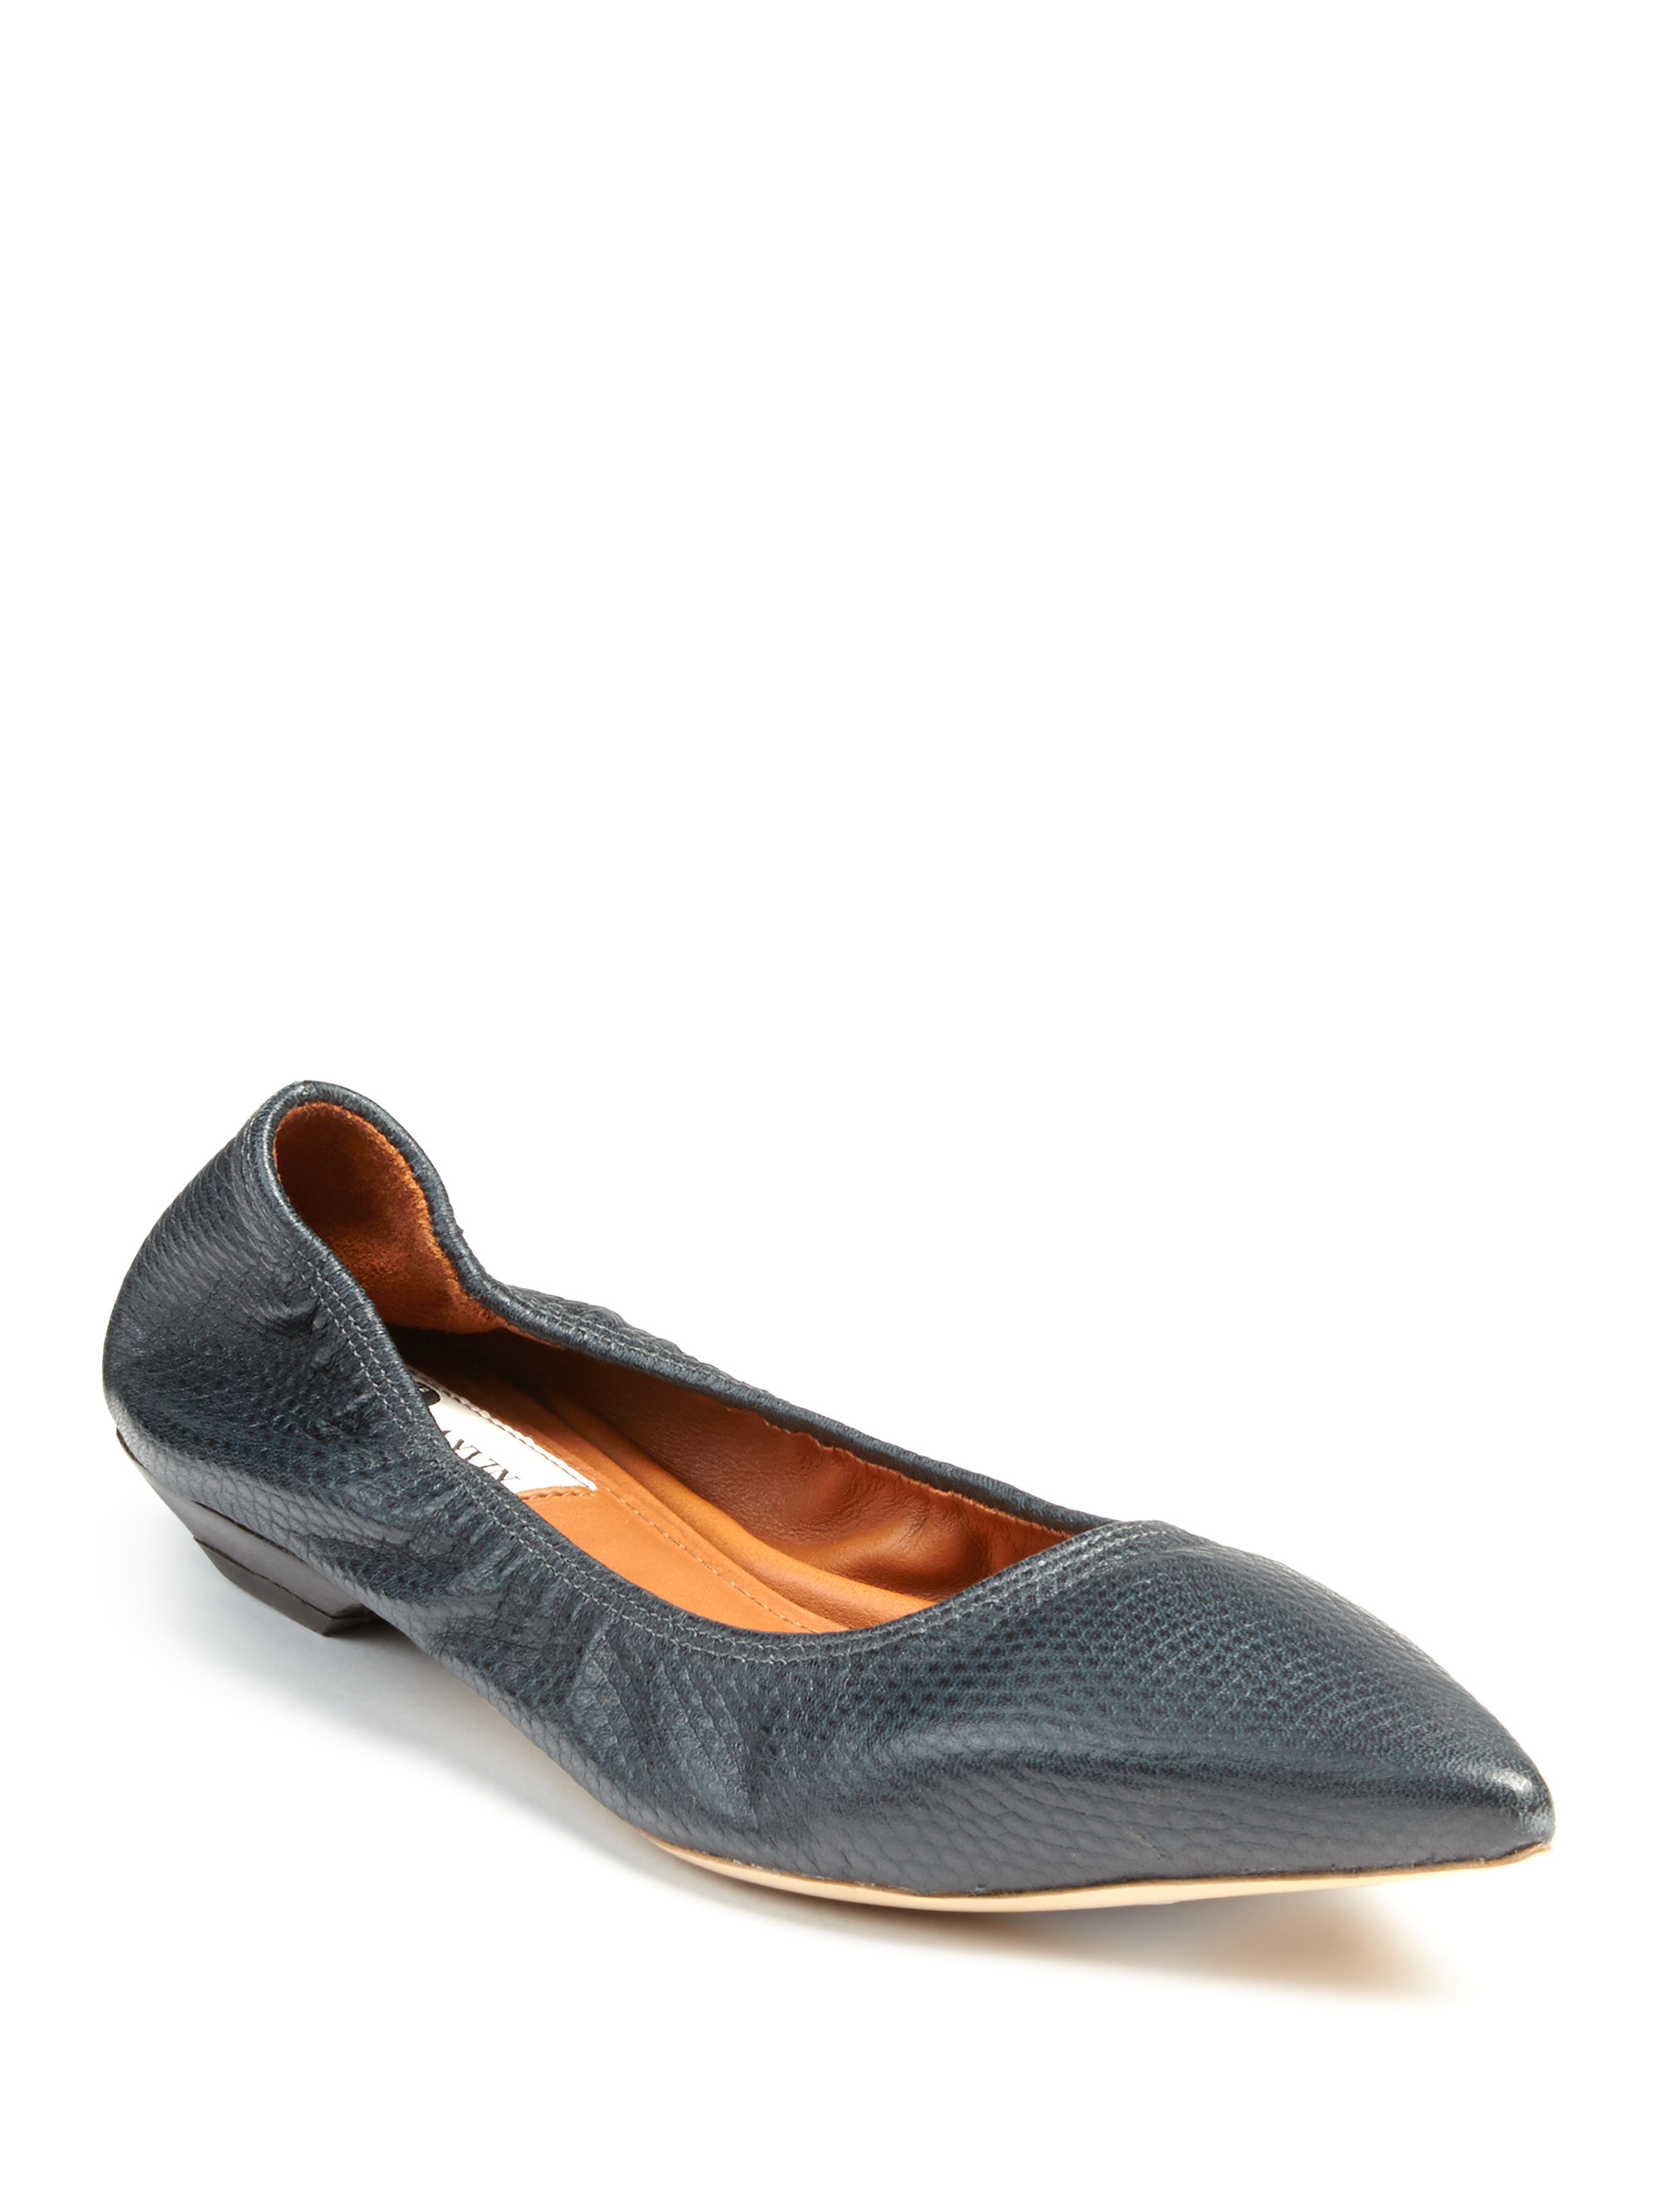 Lanvin Embossed Pointed-Toe Flats cheapest price online discount the cheapest outlet with paypal v5c2FCQbNs